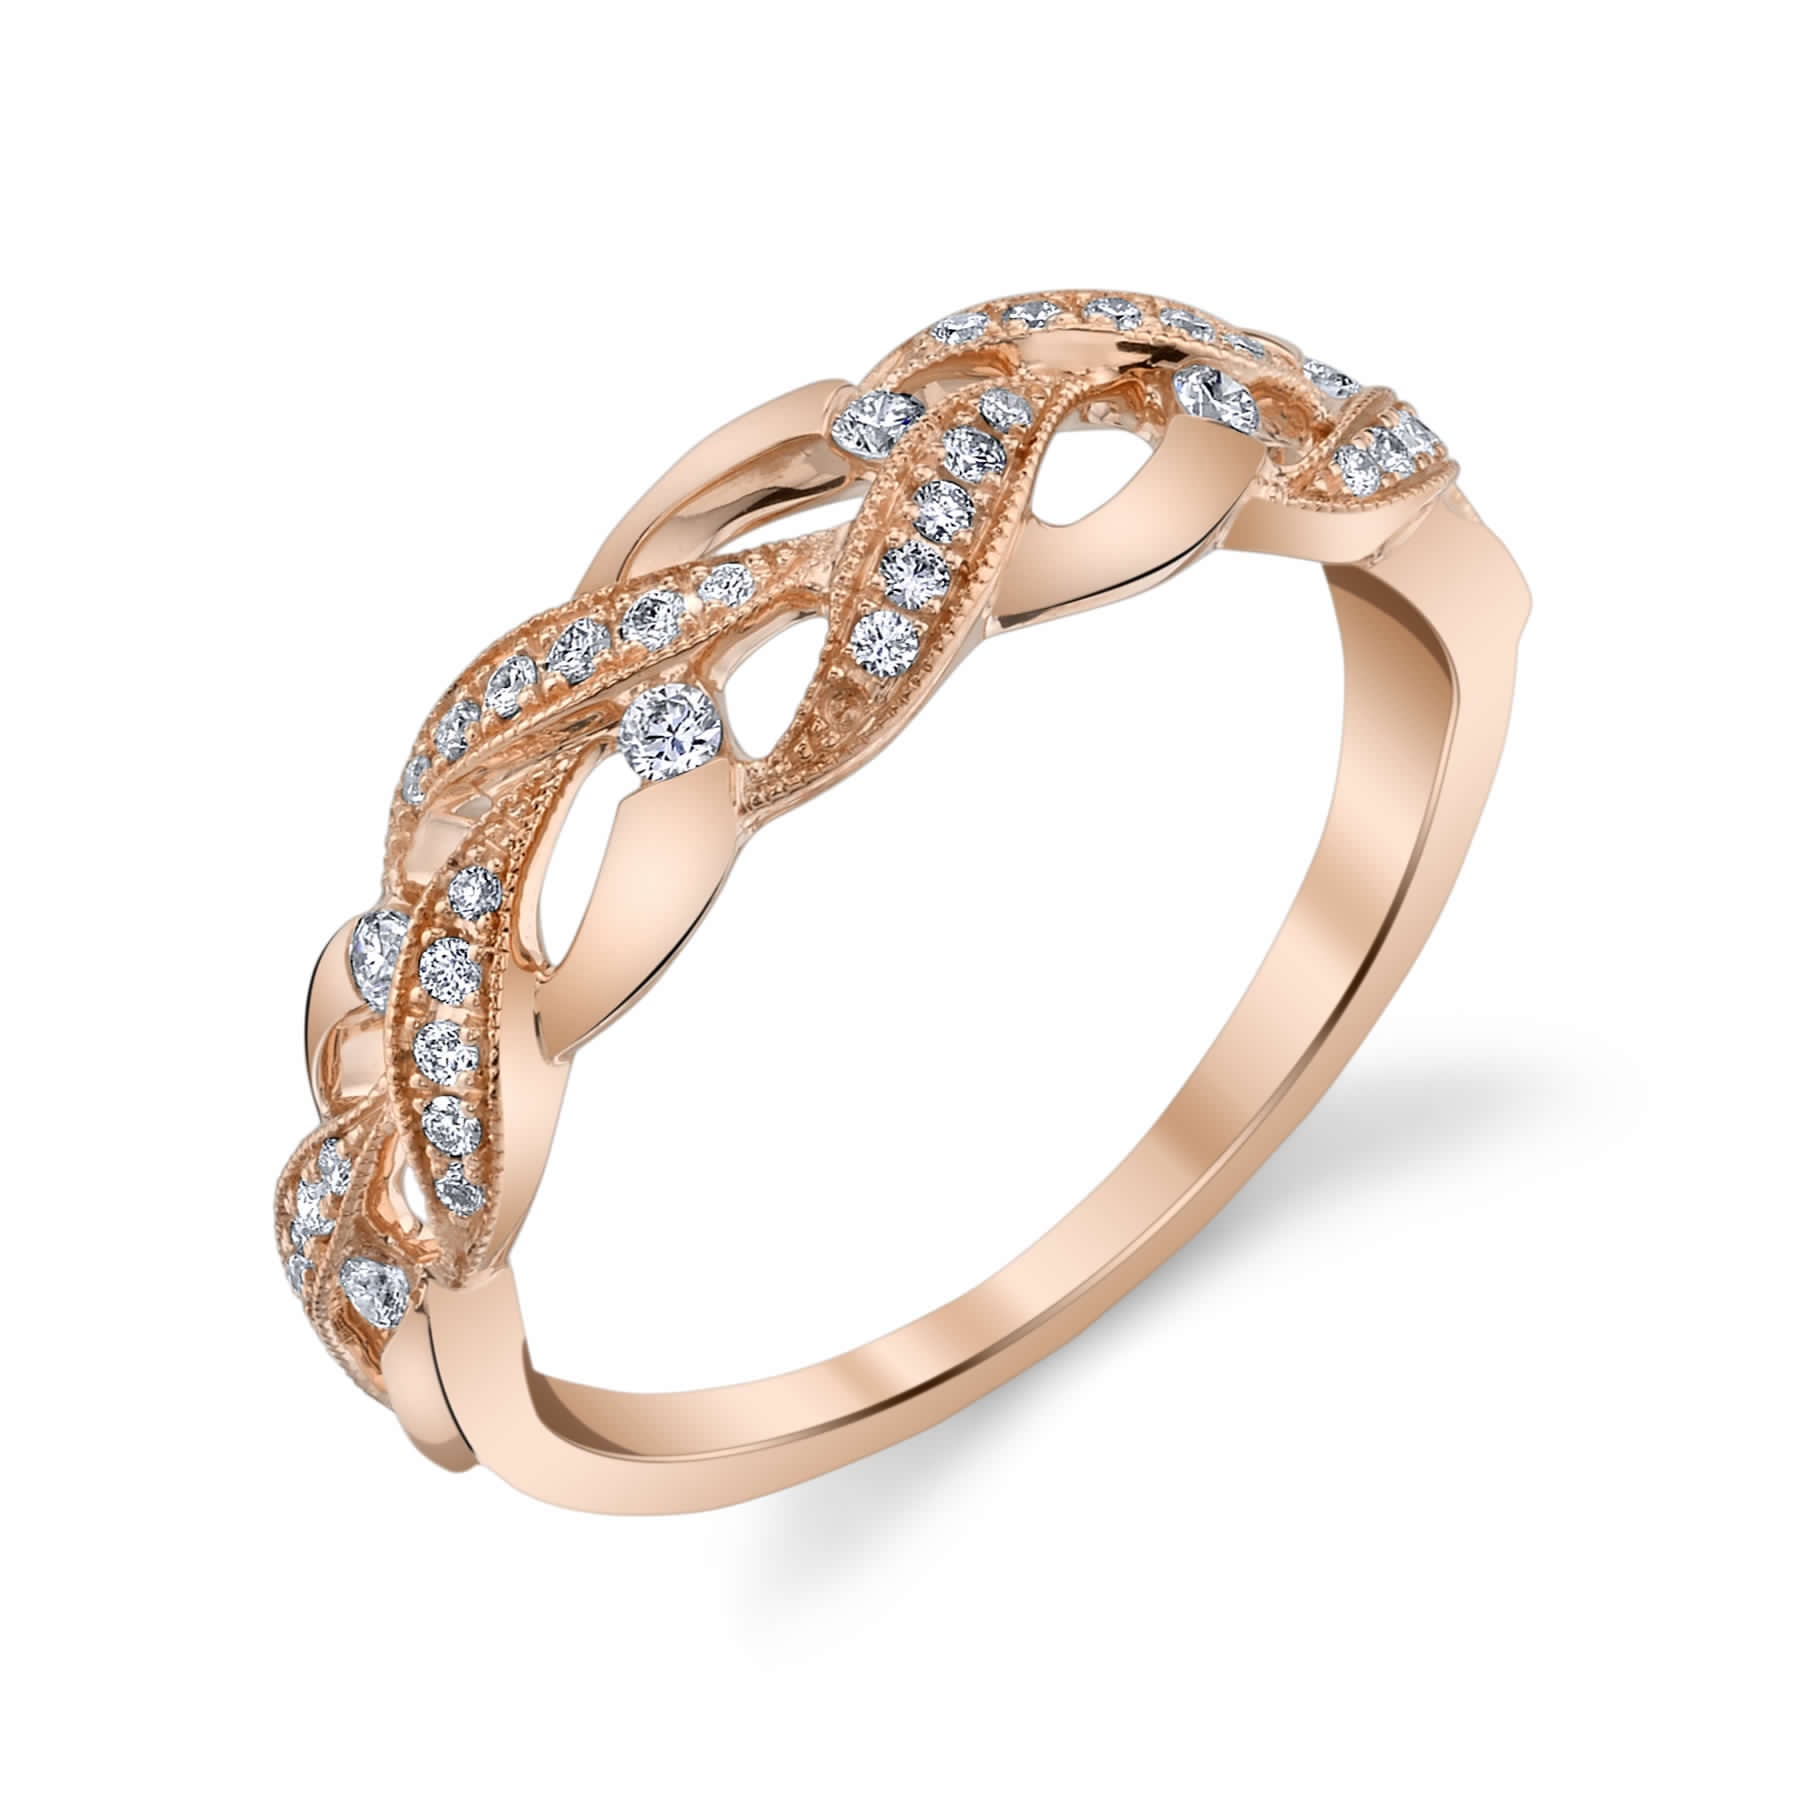 14K ROSE GOLD FASHION DIAMOND RING 14R1047YD